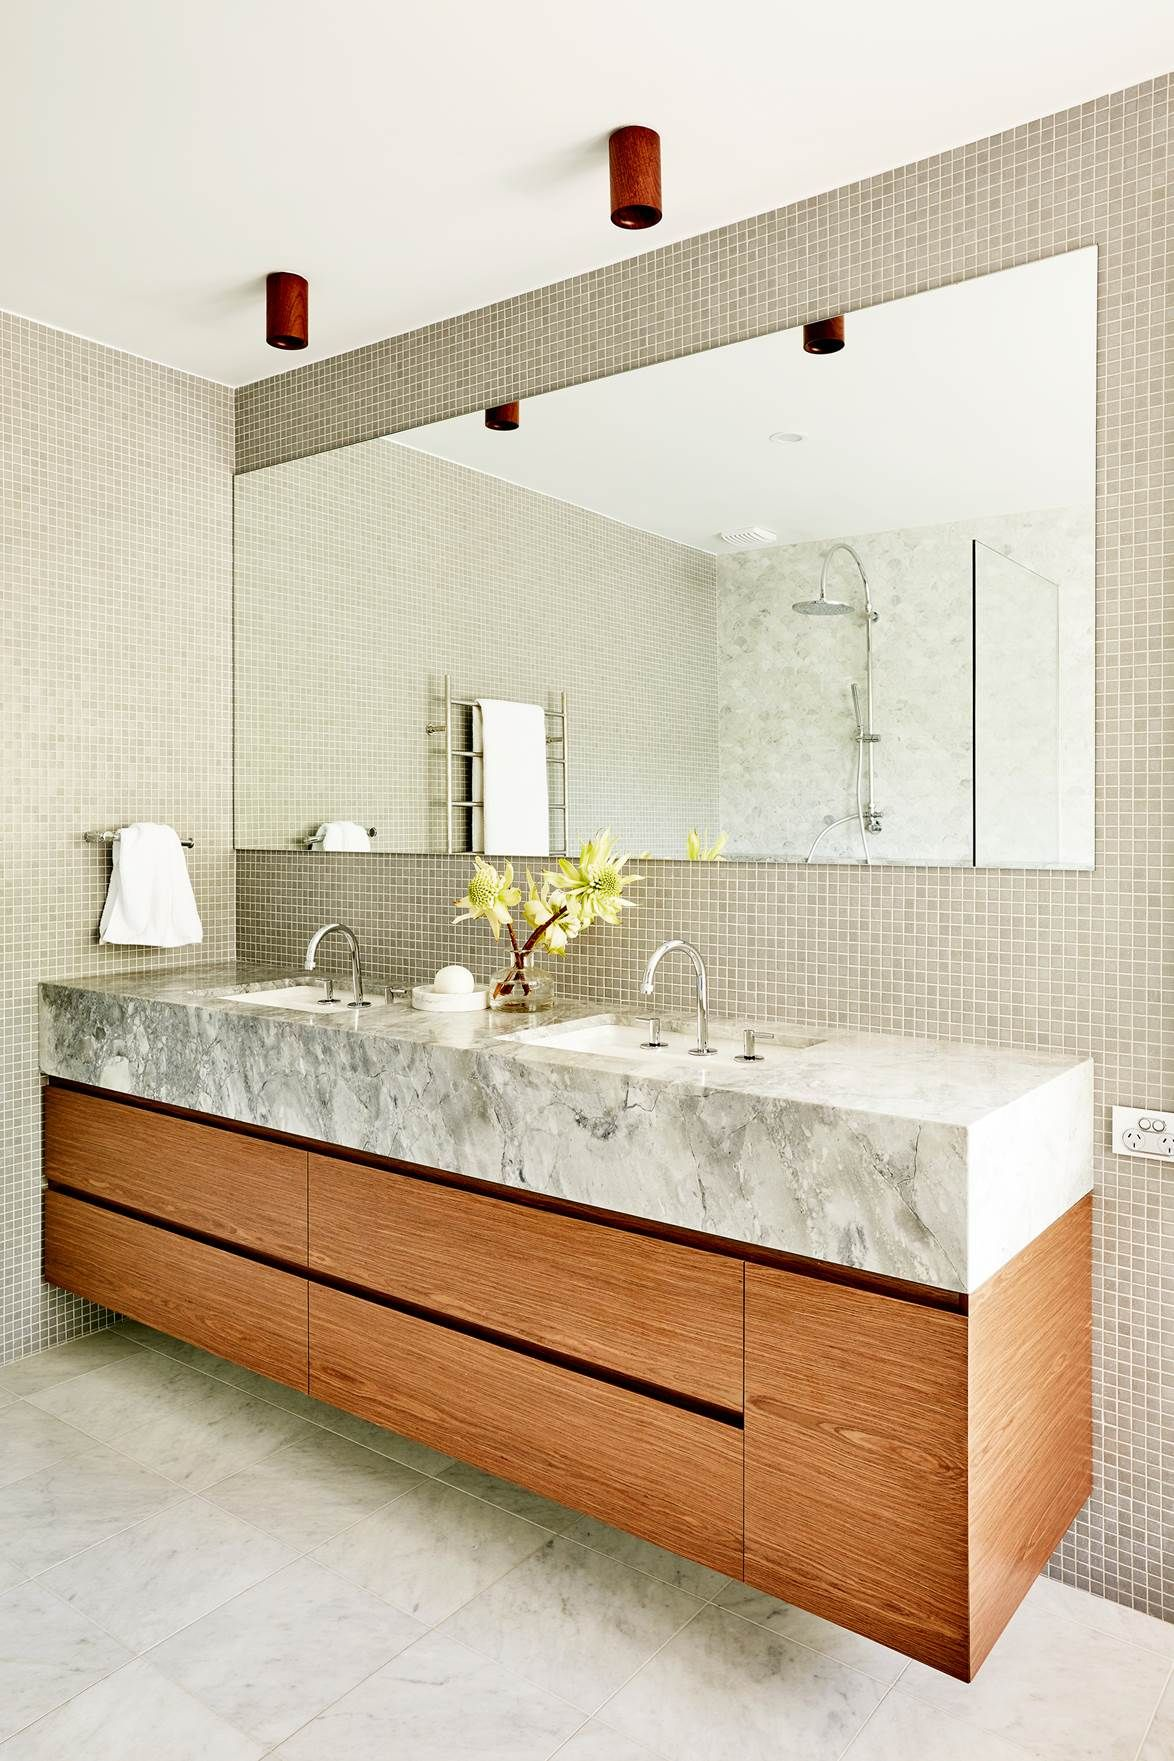 vanity lighting bulbs lowes modern ideas sink fixtures bathroom wall design plus and rotation bricked mirror degree for light using lights designer bathrooms up make comeonlight sconces